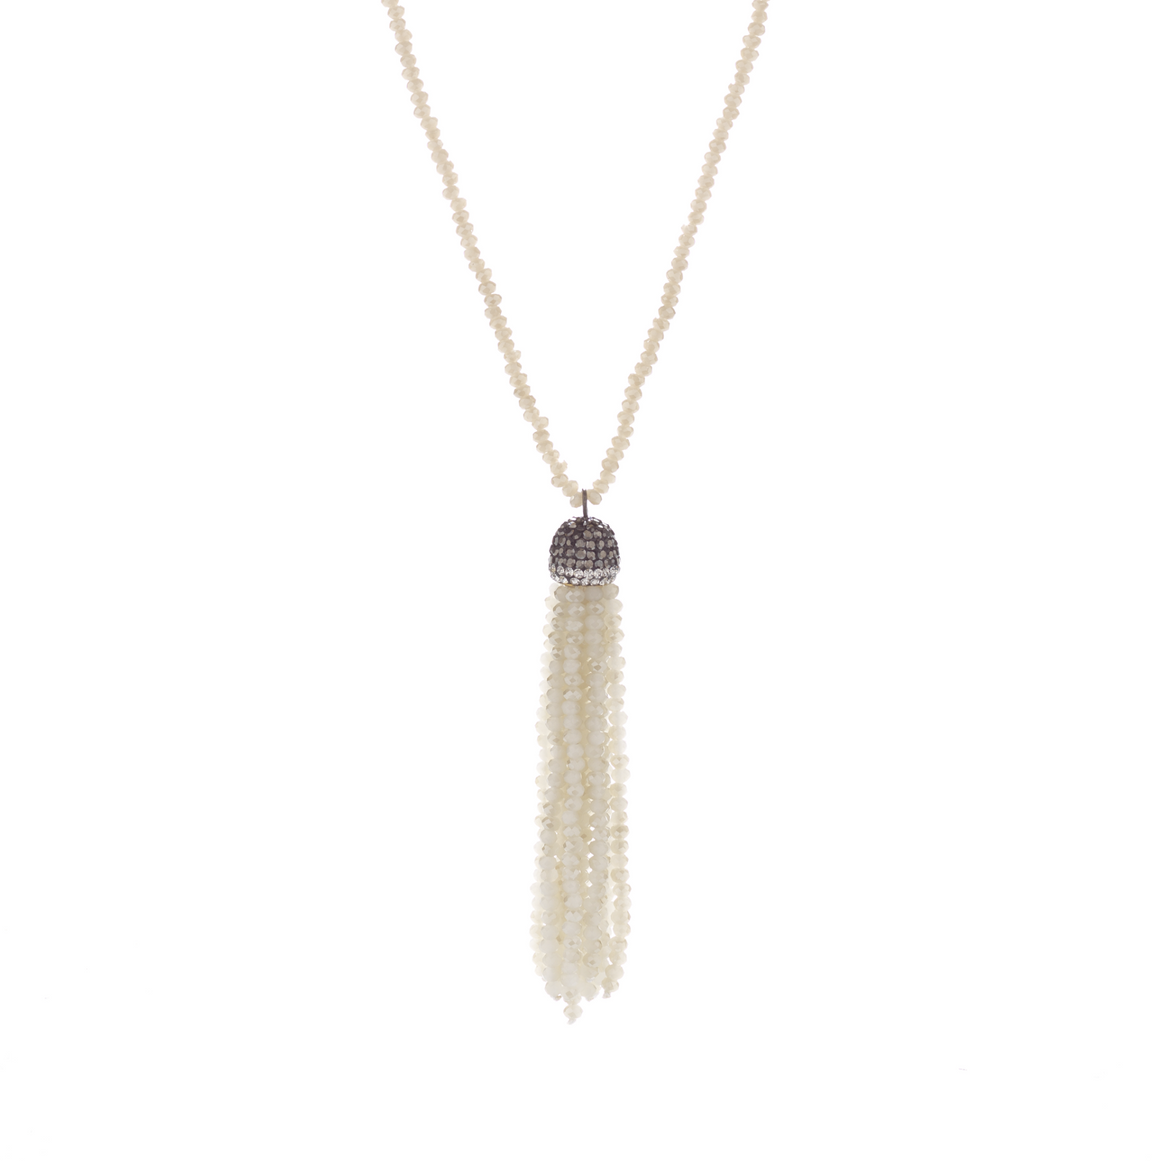 Iridescent Neutral Tassel Necklace